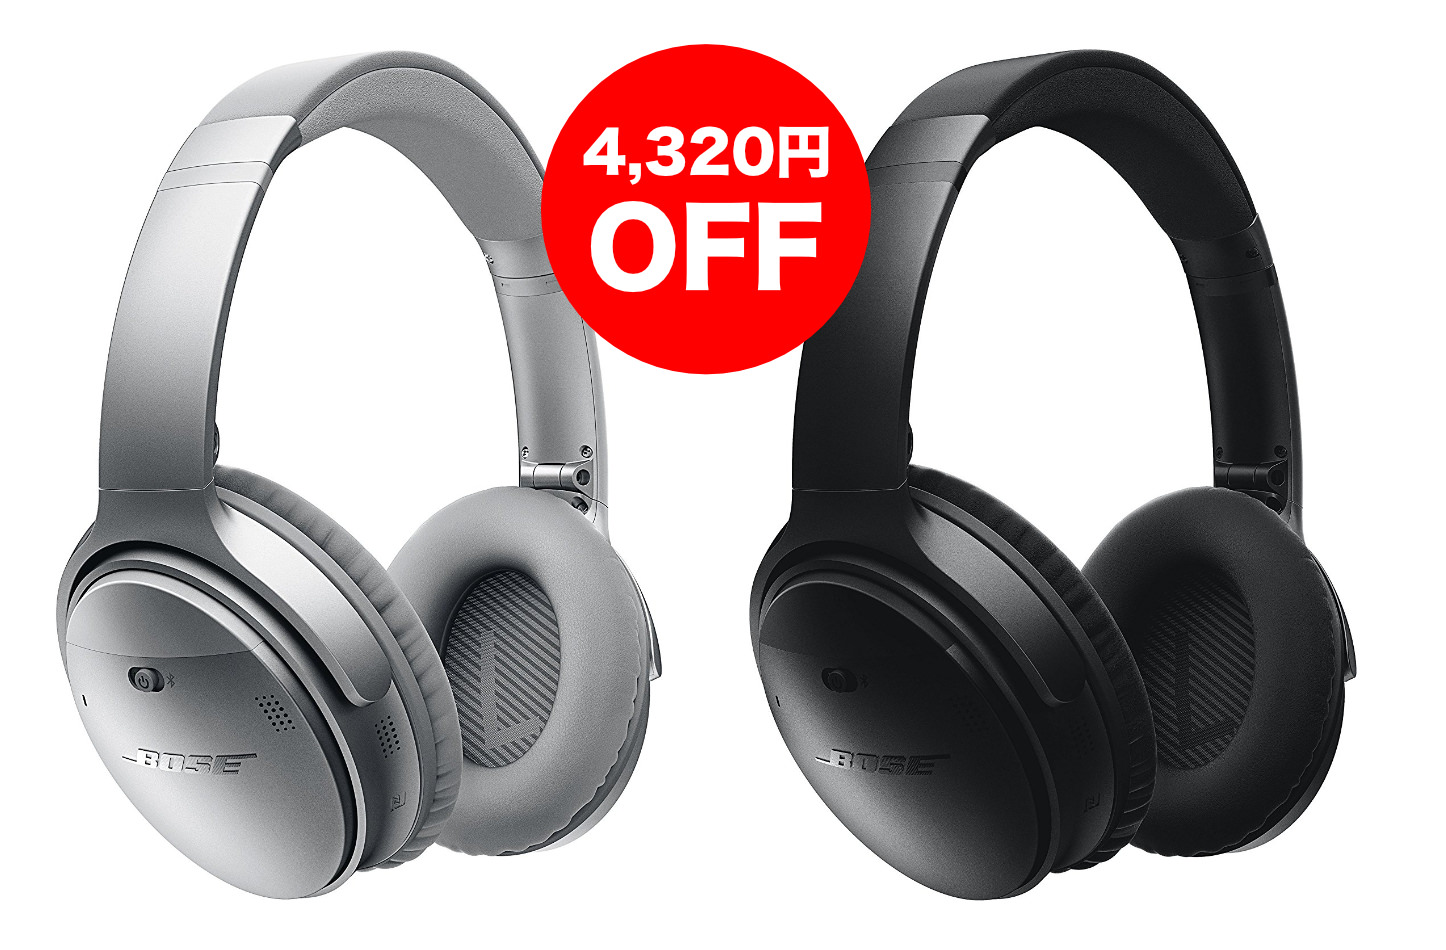 Bose QuietComfort35 Headphone Sale